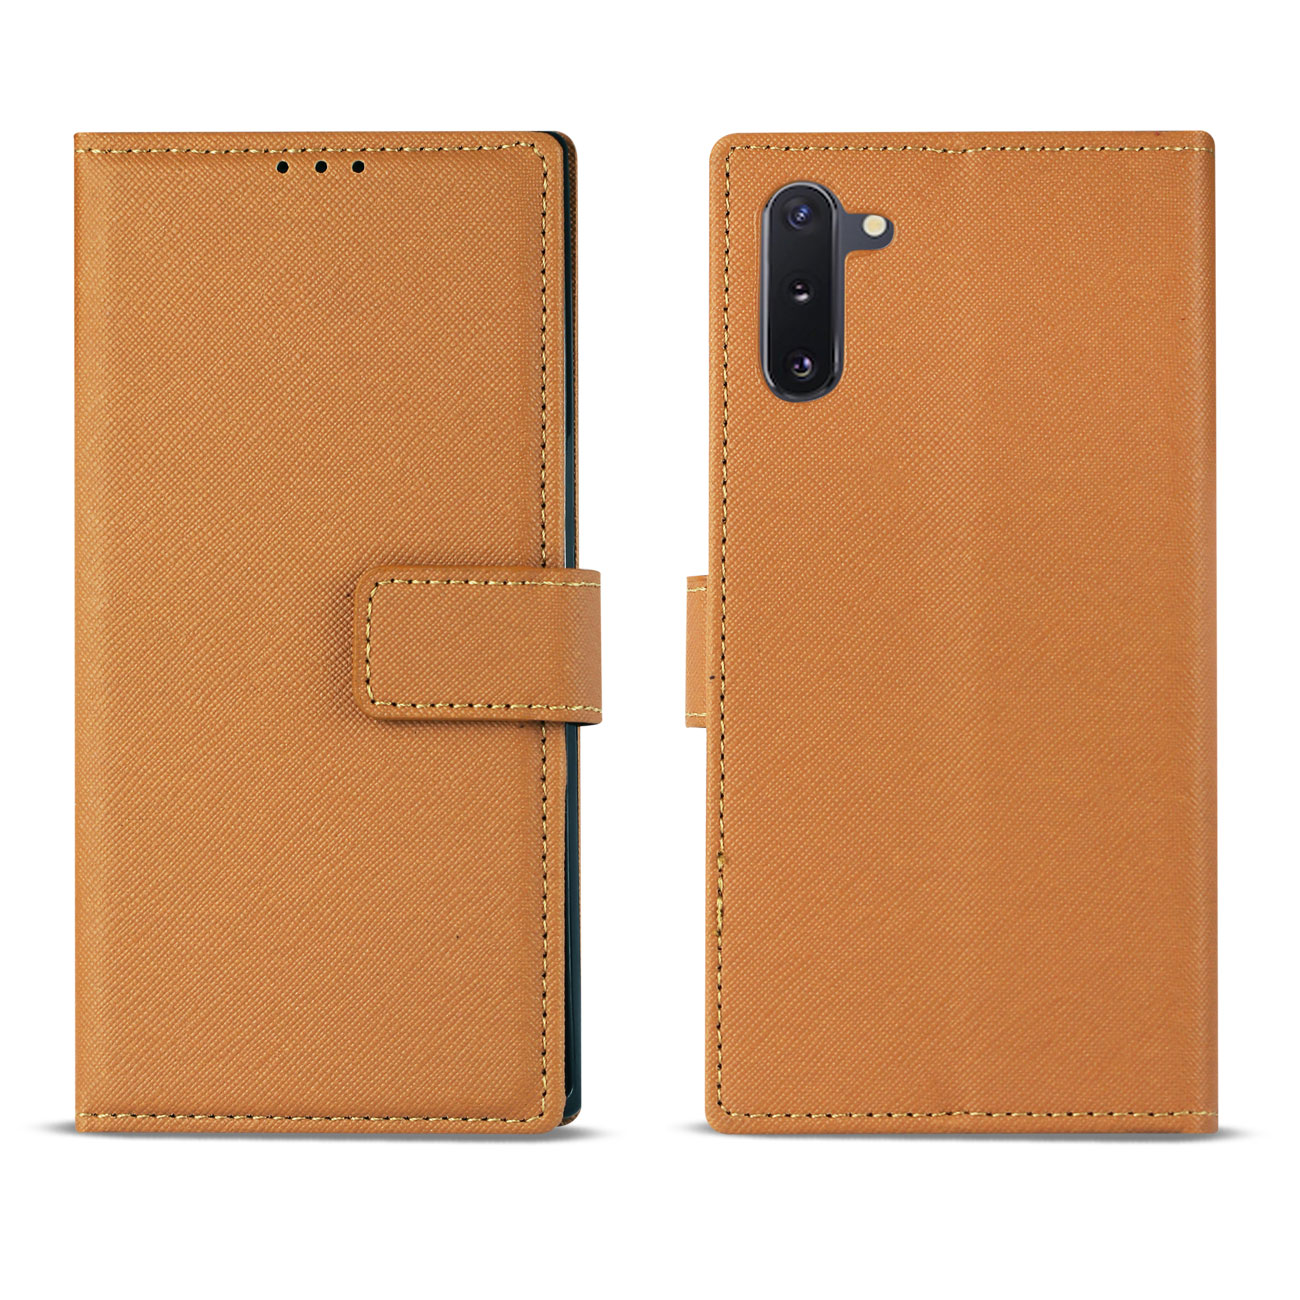 SAMSUNG GALAXY NOTE 10 3-In-1 Wallet Case In BROWN